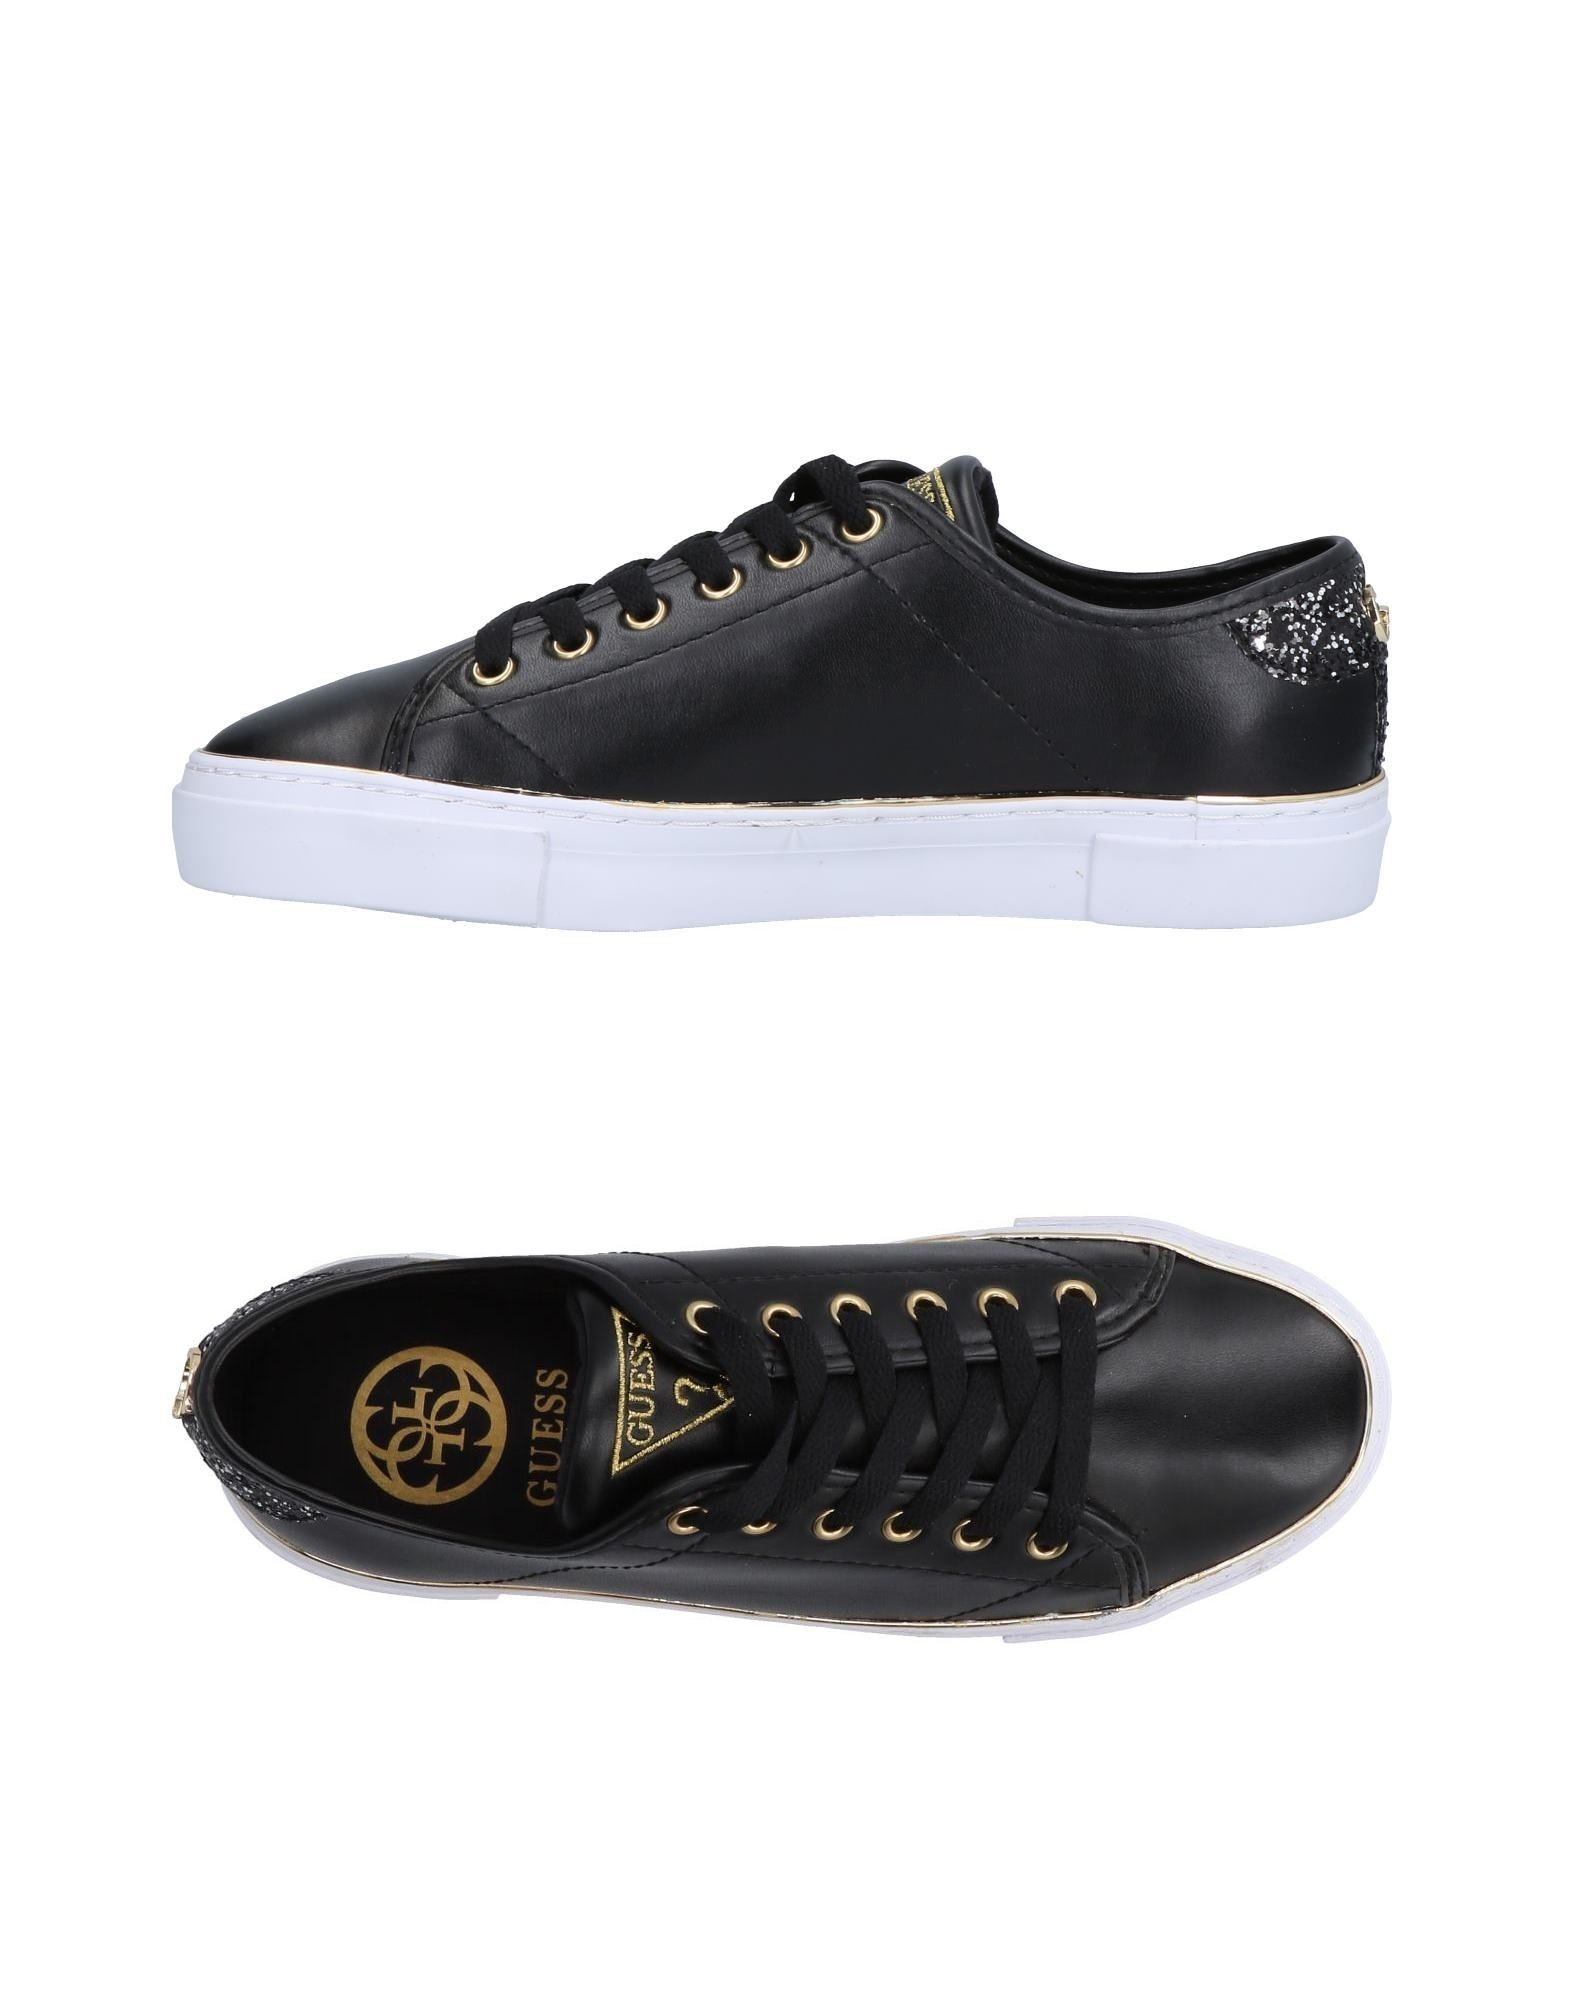 Guess Sneakers Sneakers Sneakers - Women Guess Sneakers online on  Canada - 11495487HT 89fe80